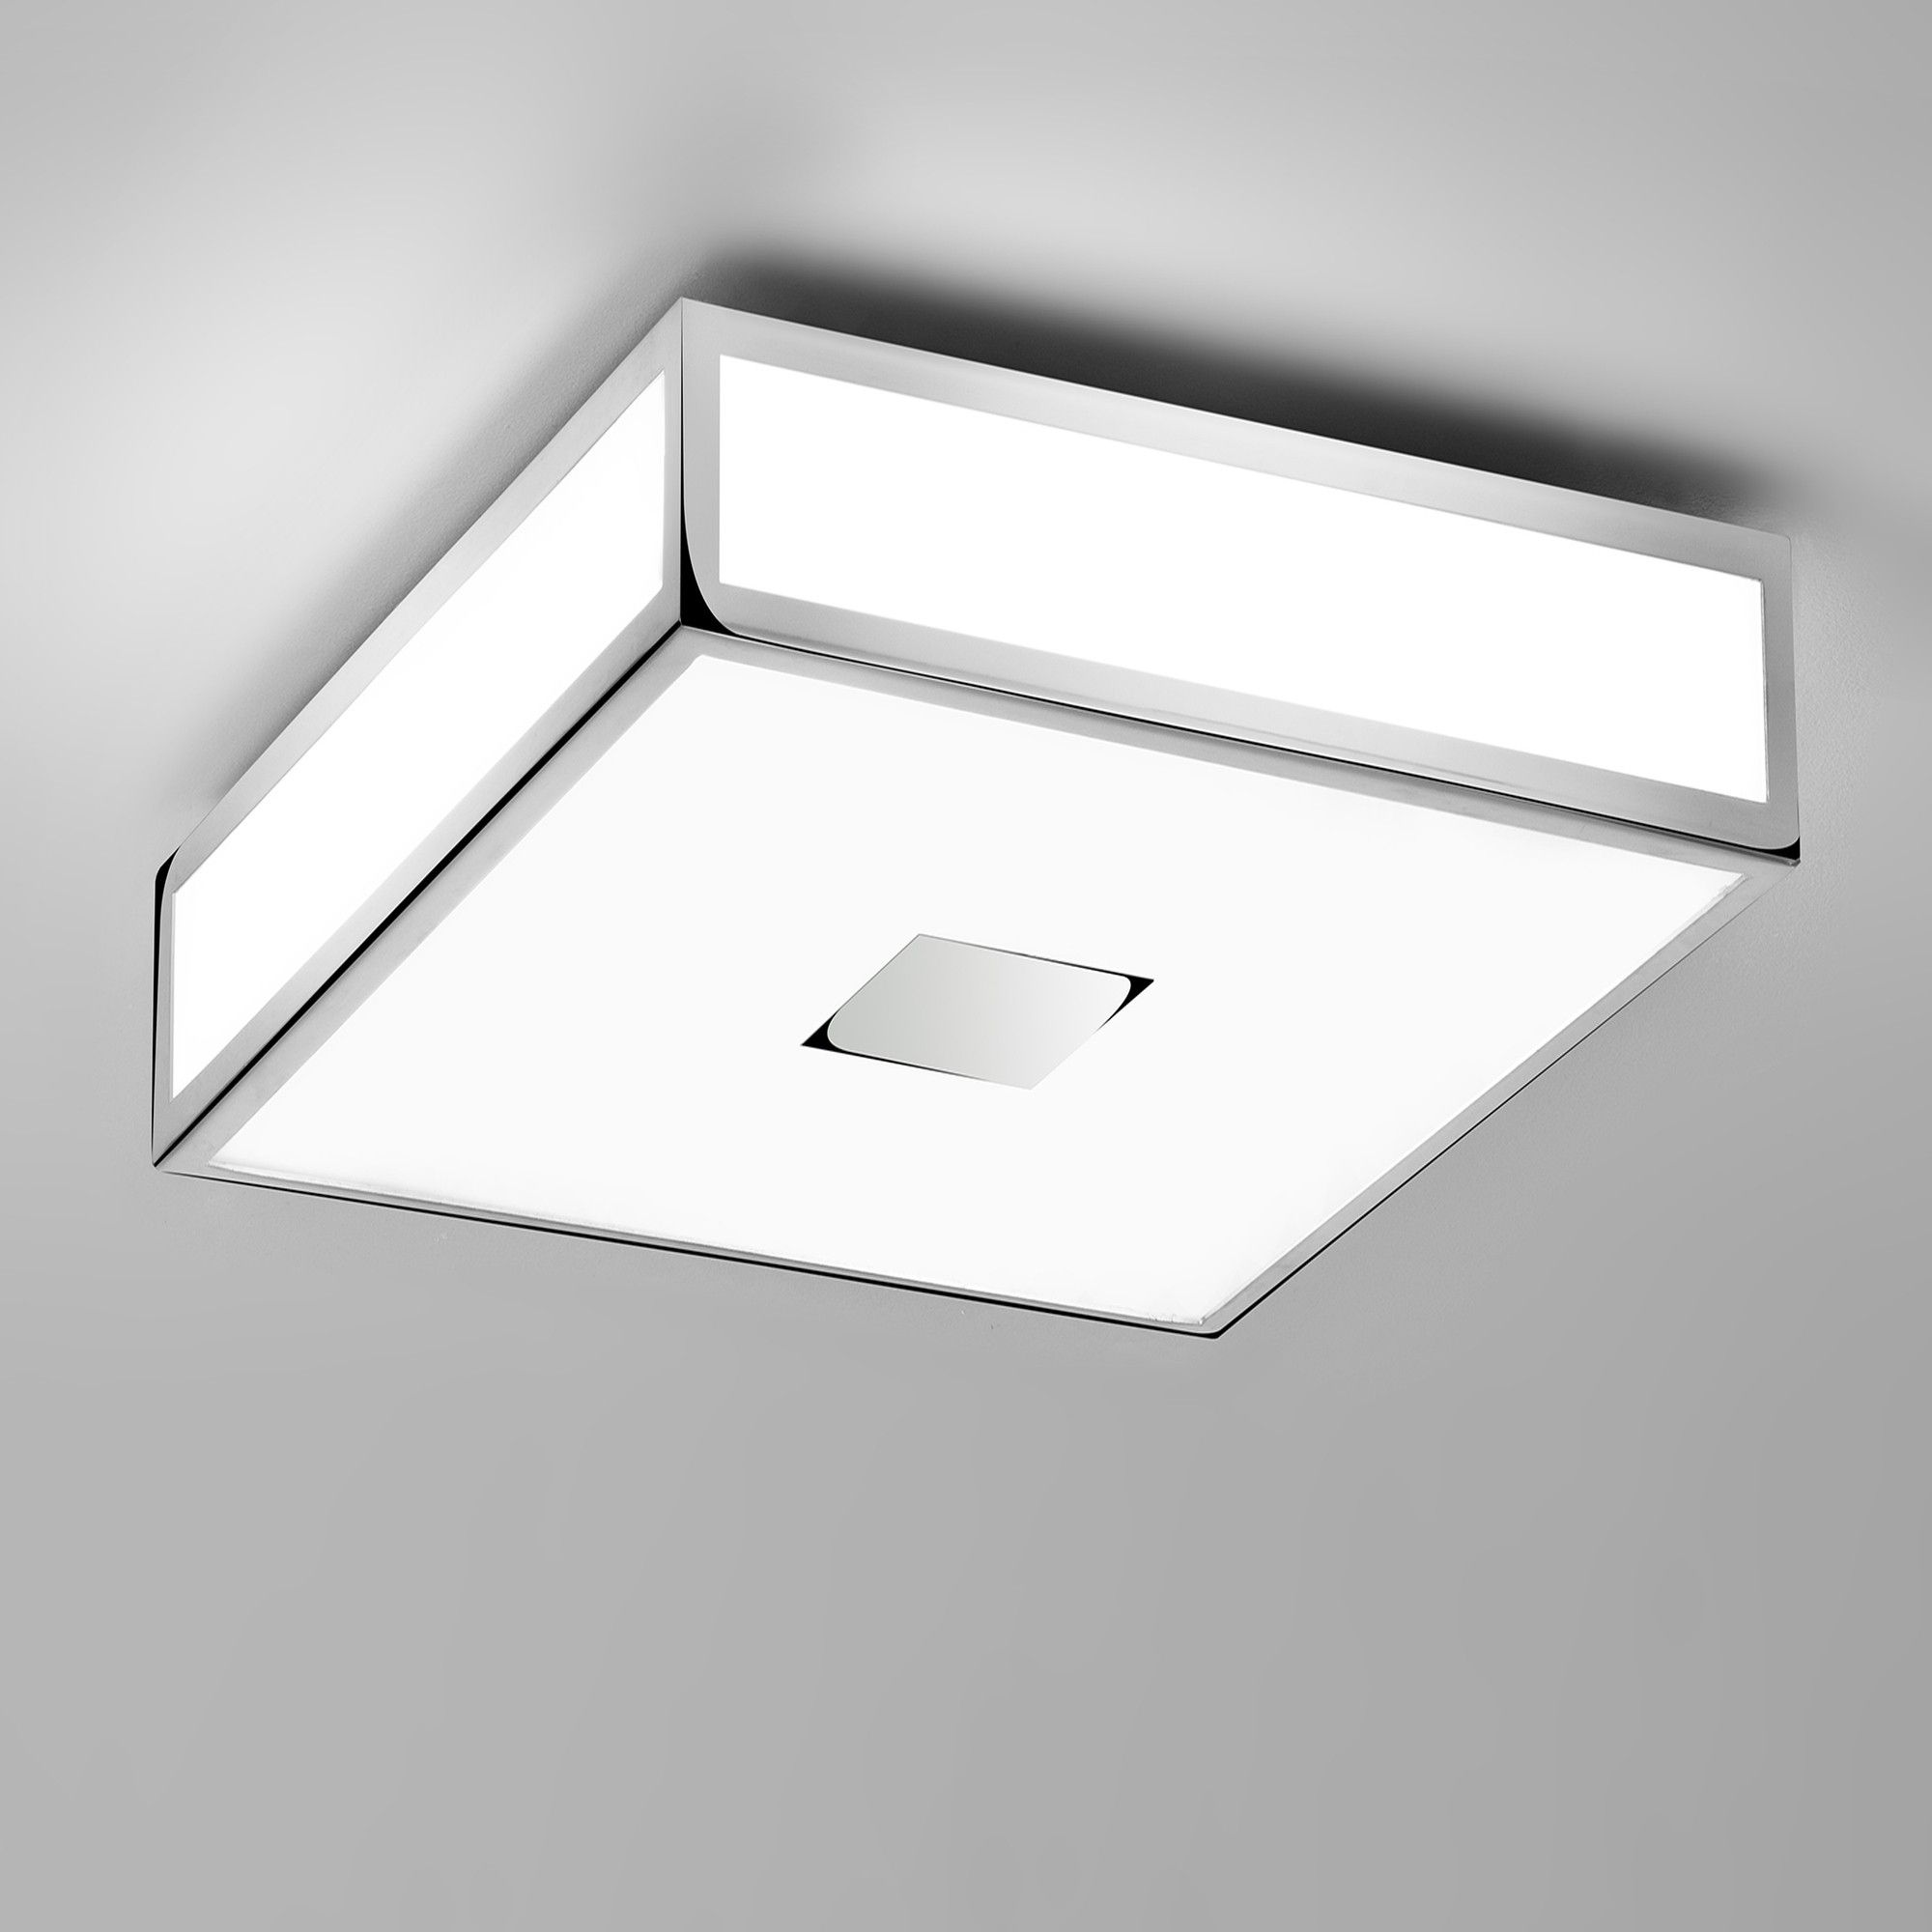 Vent Axia Ceiling Mounted Bathroom Extractor Fan Bathroom Ceiling Light Bathroom Light Fixtures Ceiling Ceiling Fan Bathroom